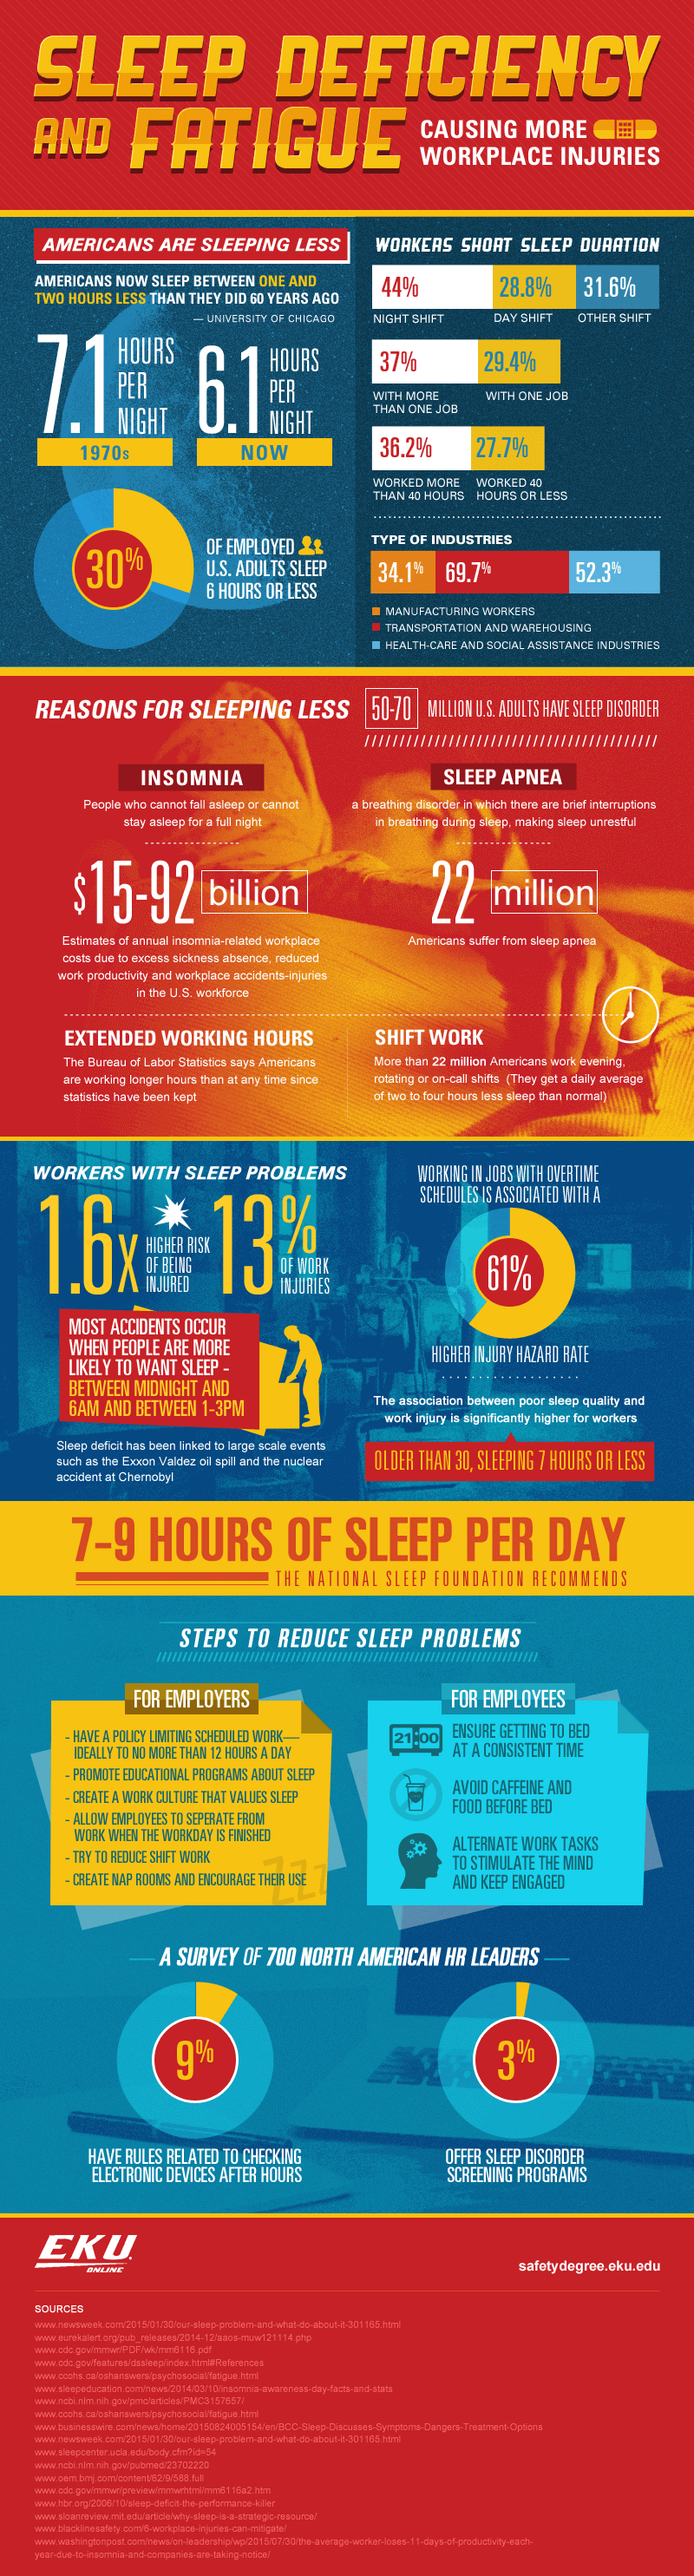 Infographic on Sleep Deficiency and Fatigue Causing More Workplace Injuries